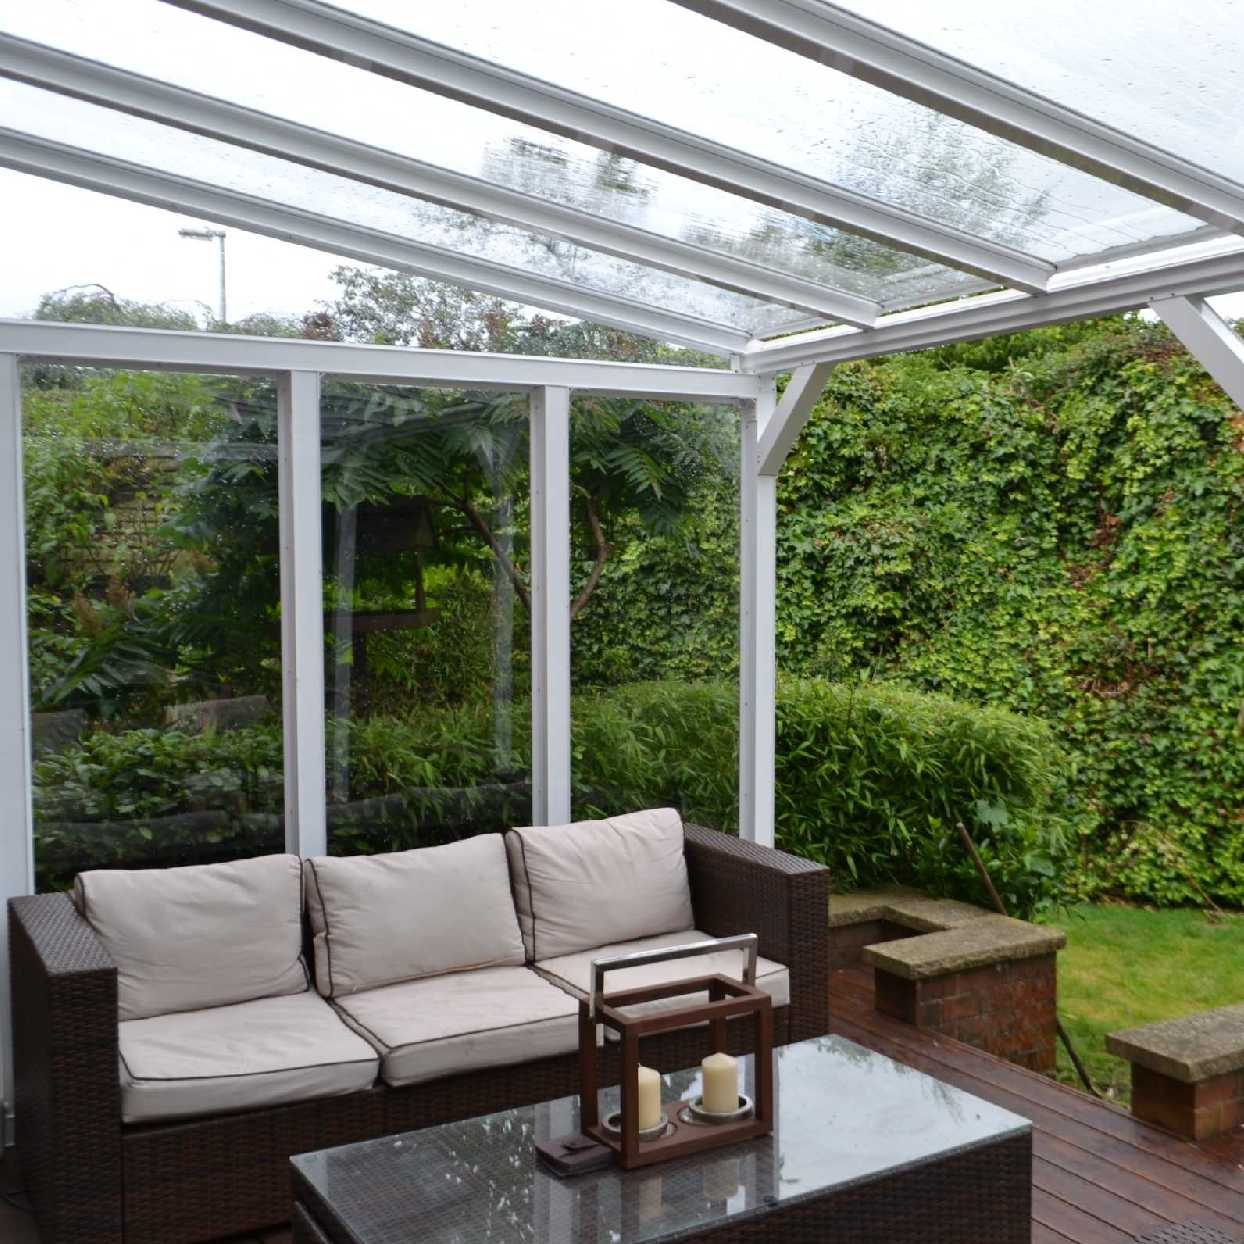 Omega Smart White Lean-To Canopy UNGLAZED for 6mm Glazing - 2.8m (W) x 2.0m (P), (2) Supporting Posts